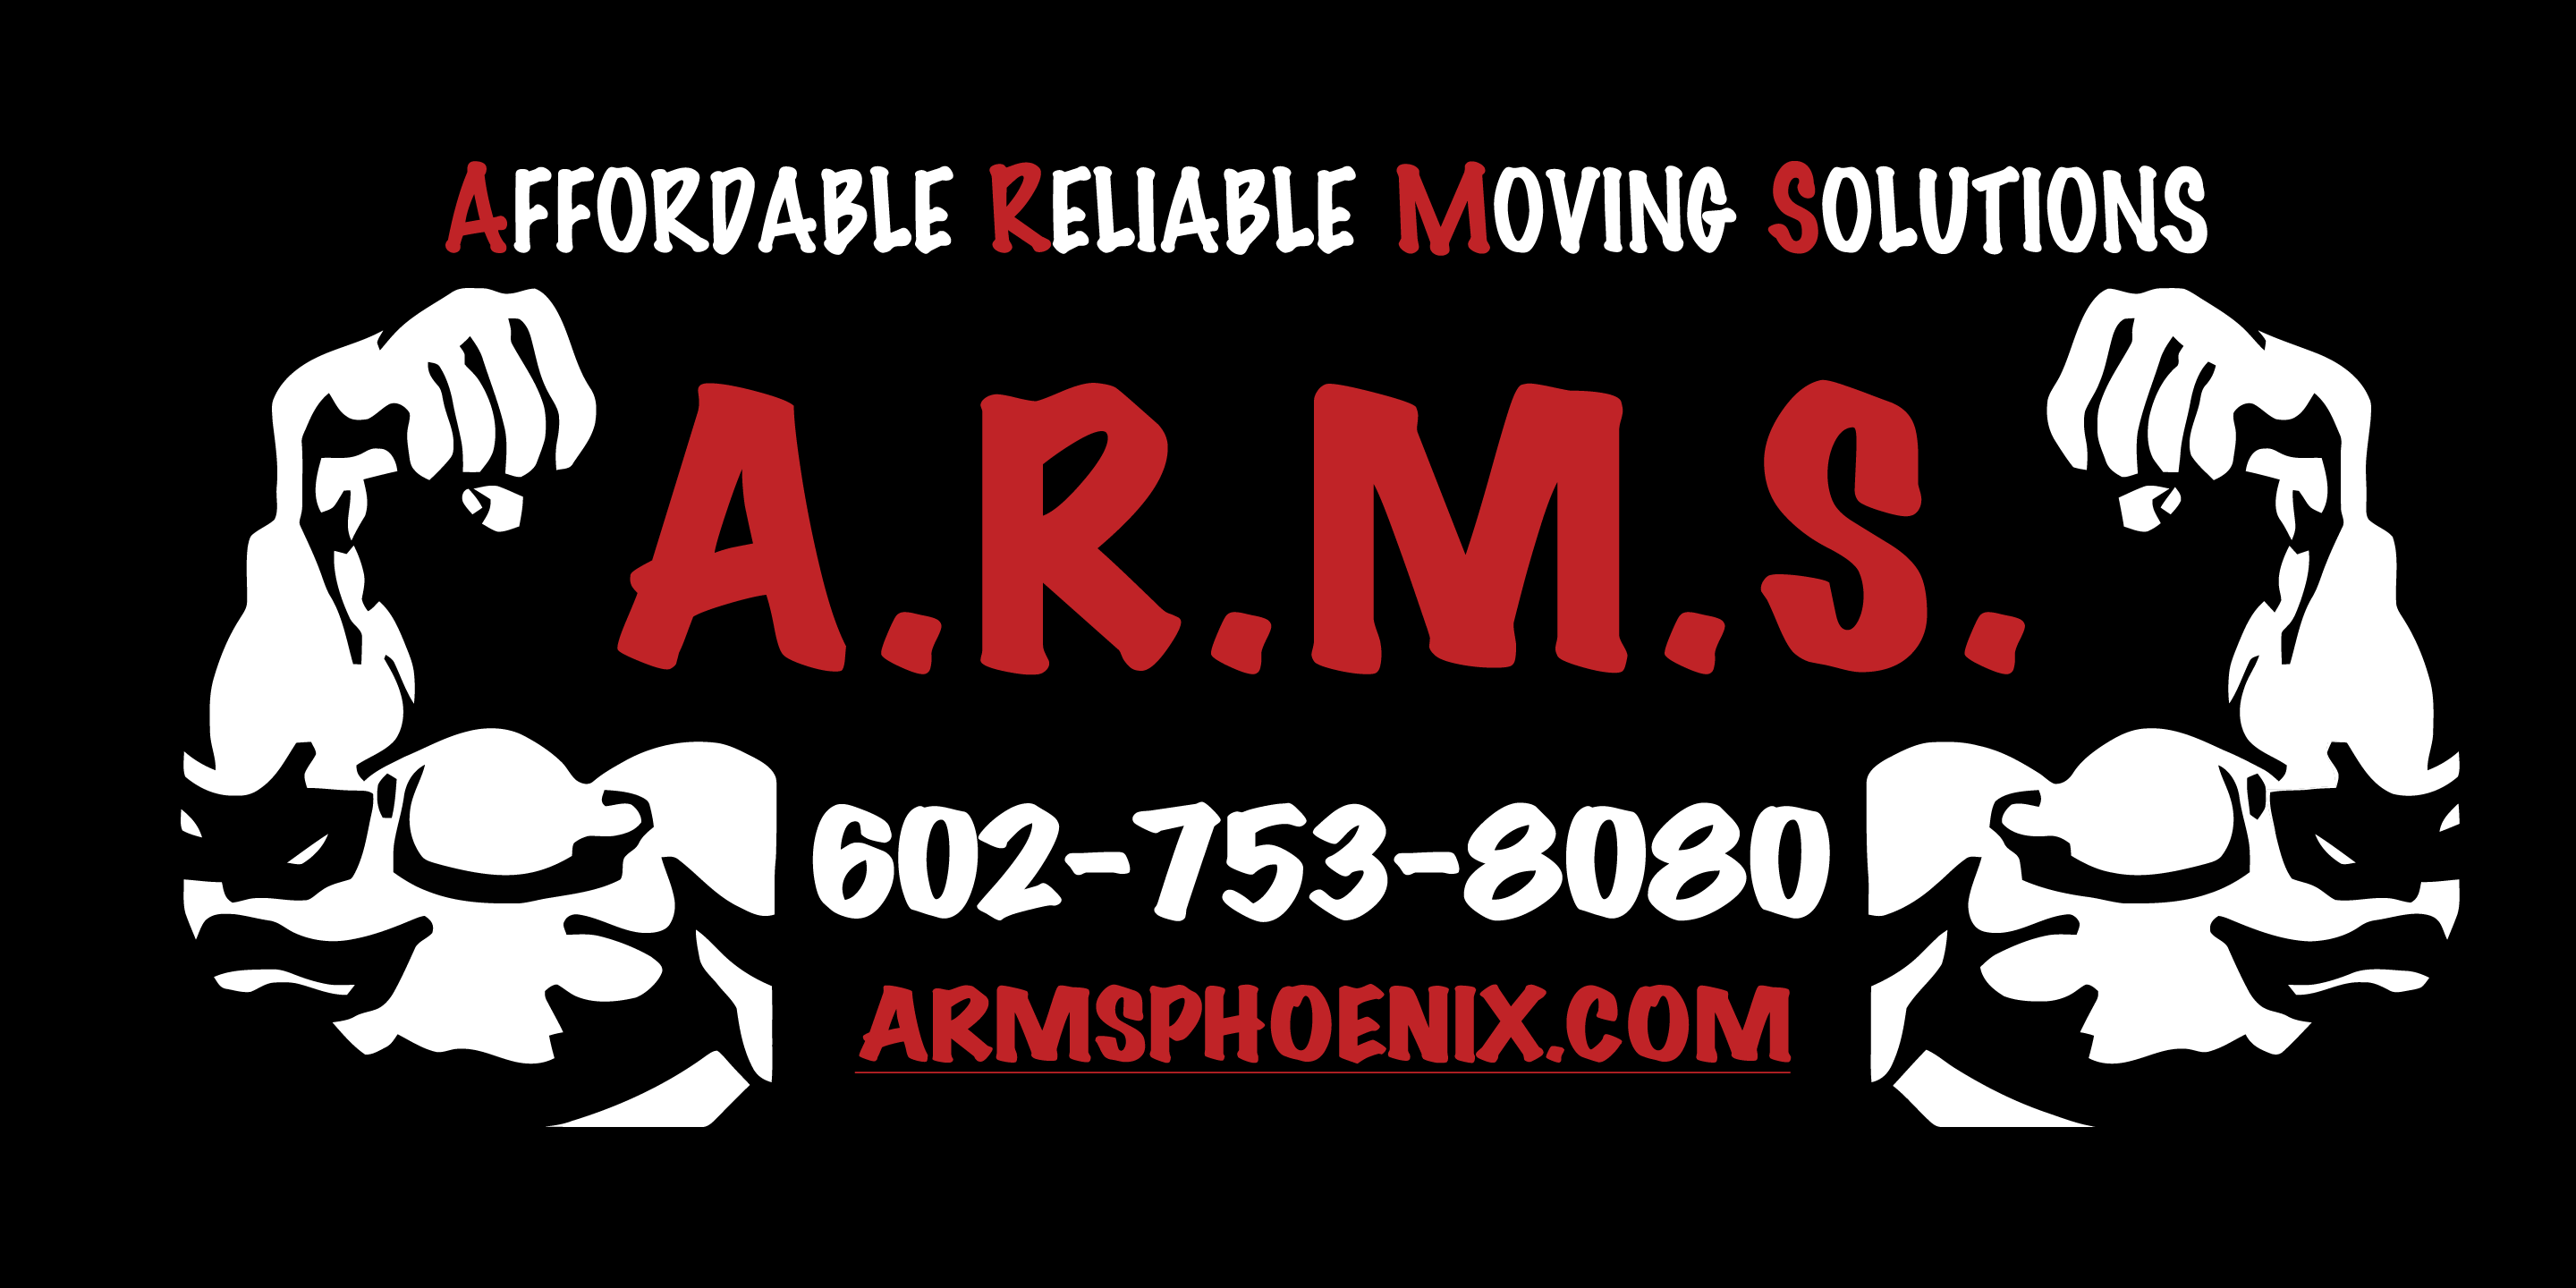 ARMS-Affordable Reliable Moving Solutions Logo